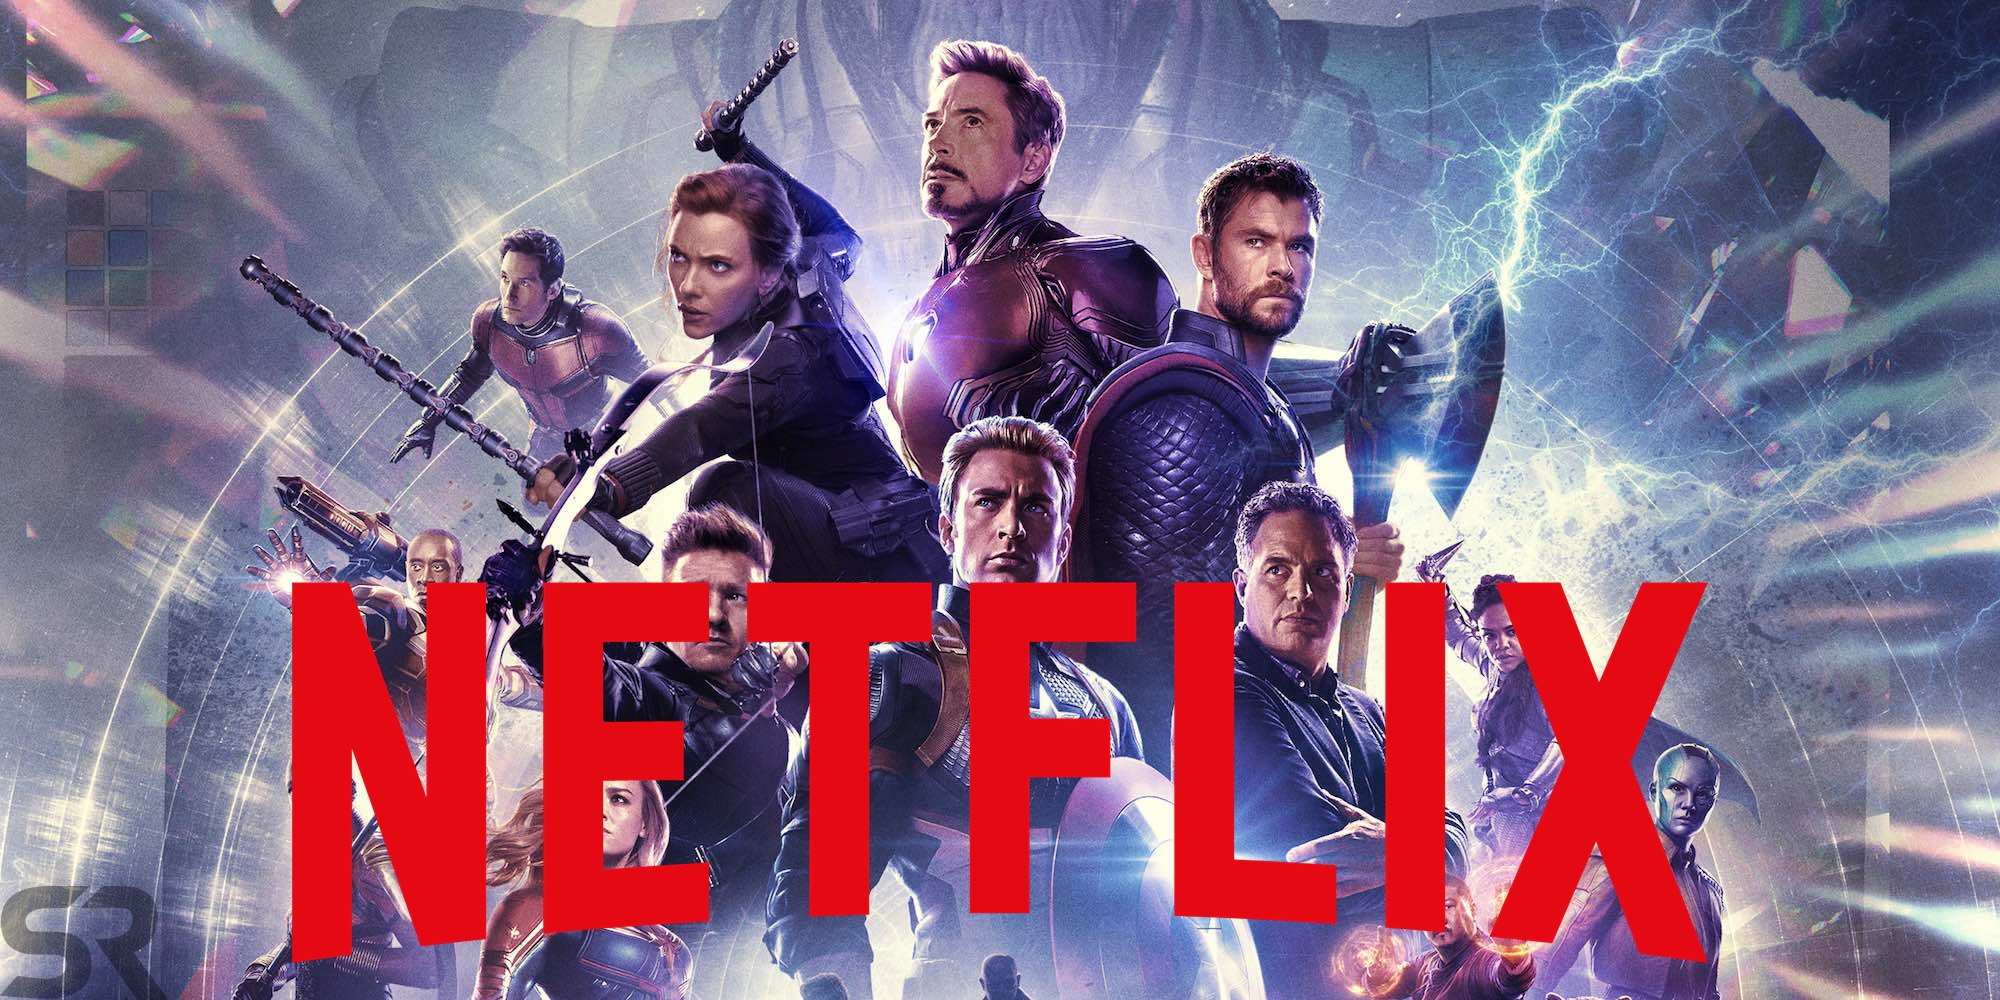 Will Avengers Endgame release on Netflix? Where can I watch it online?